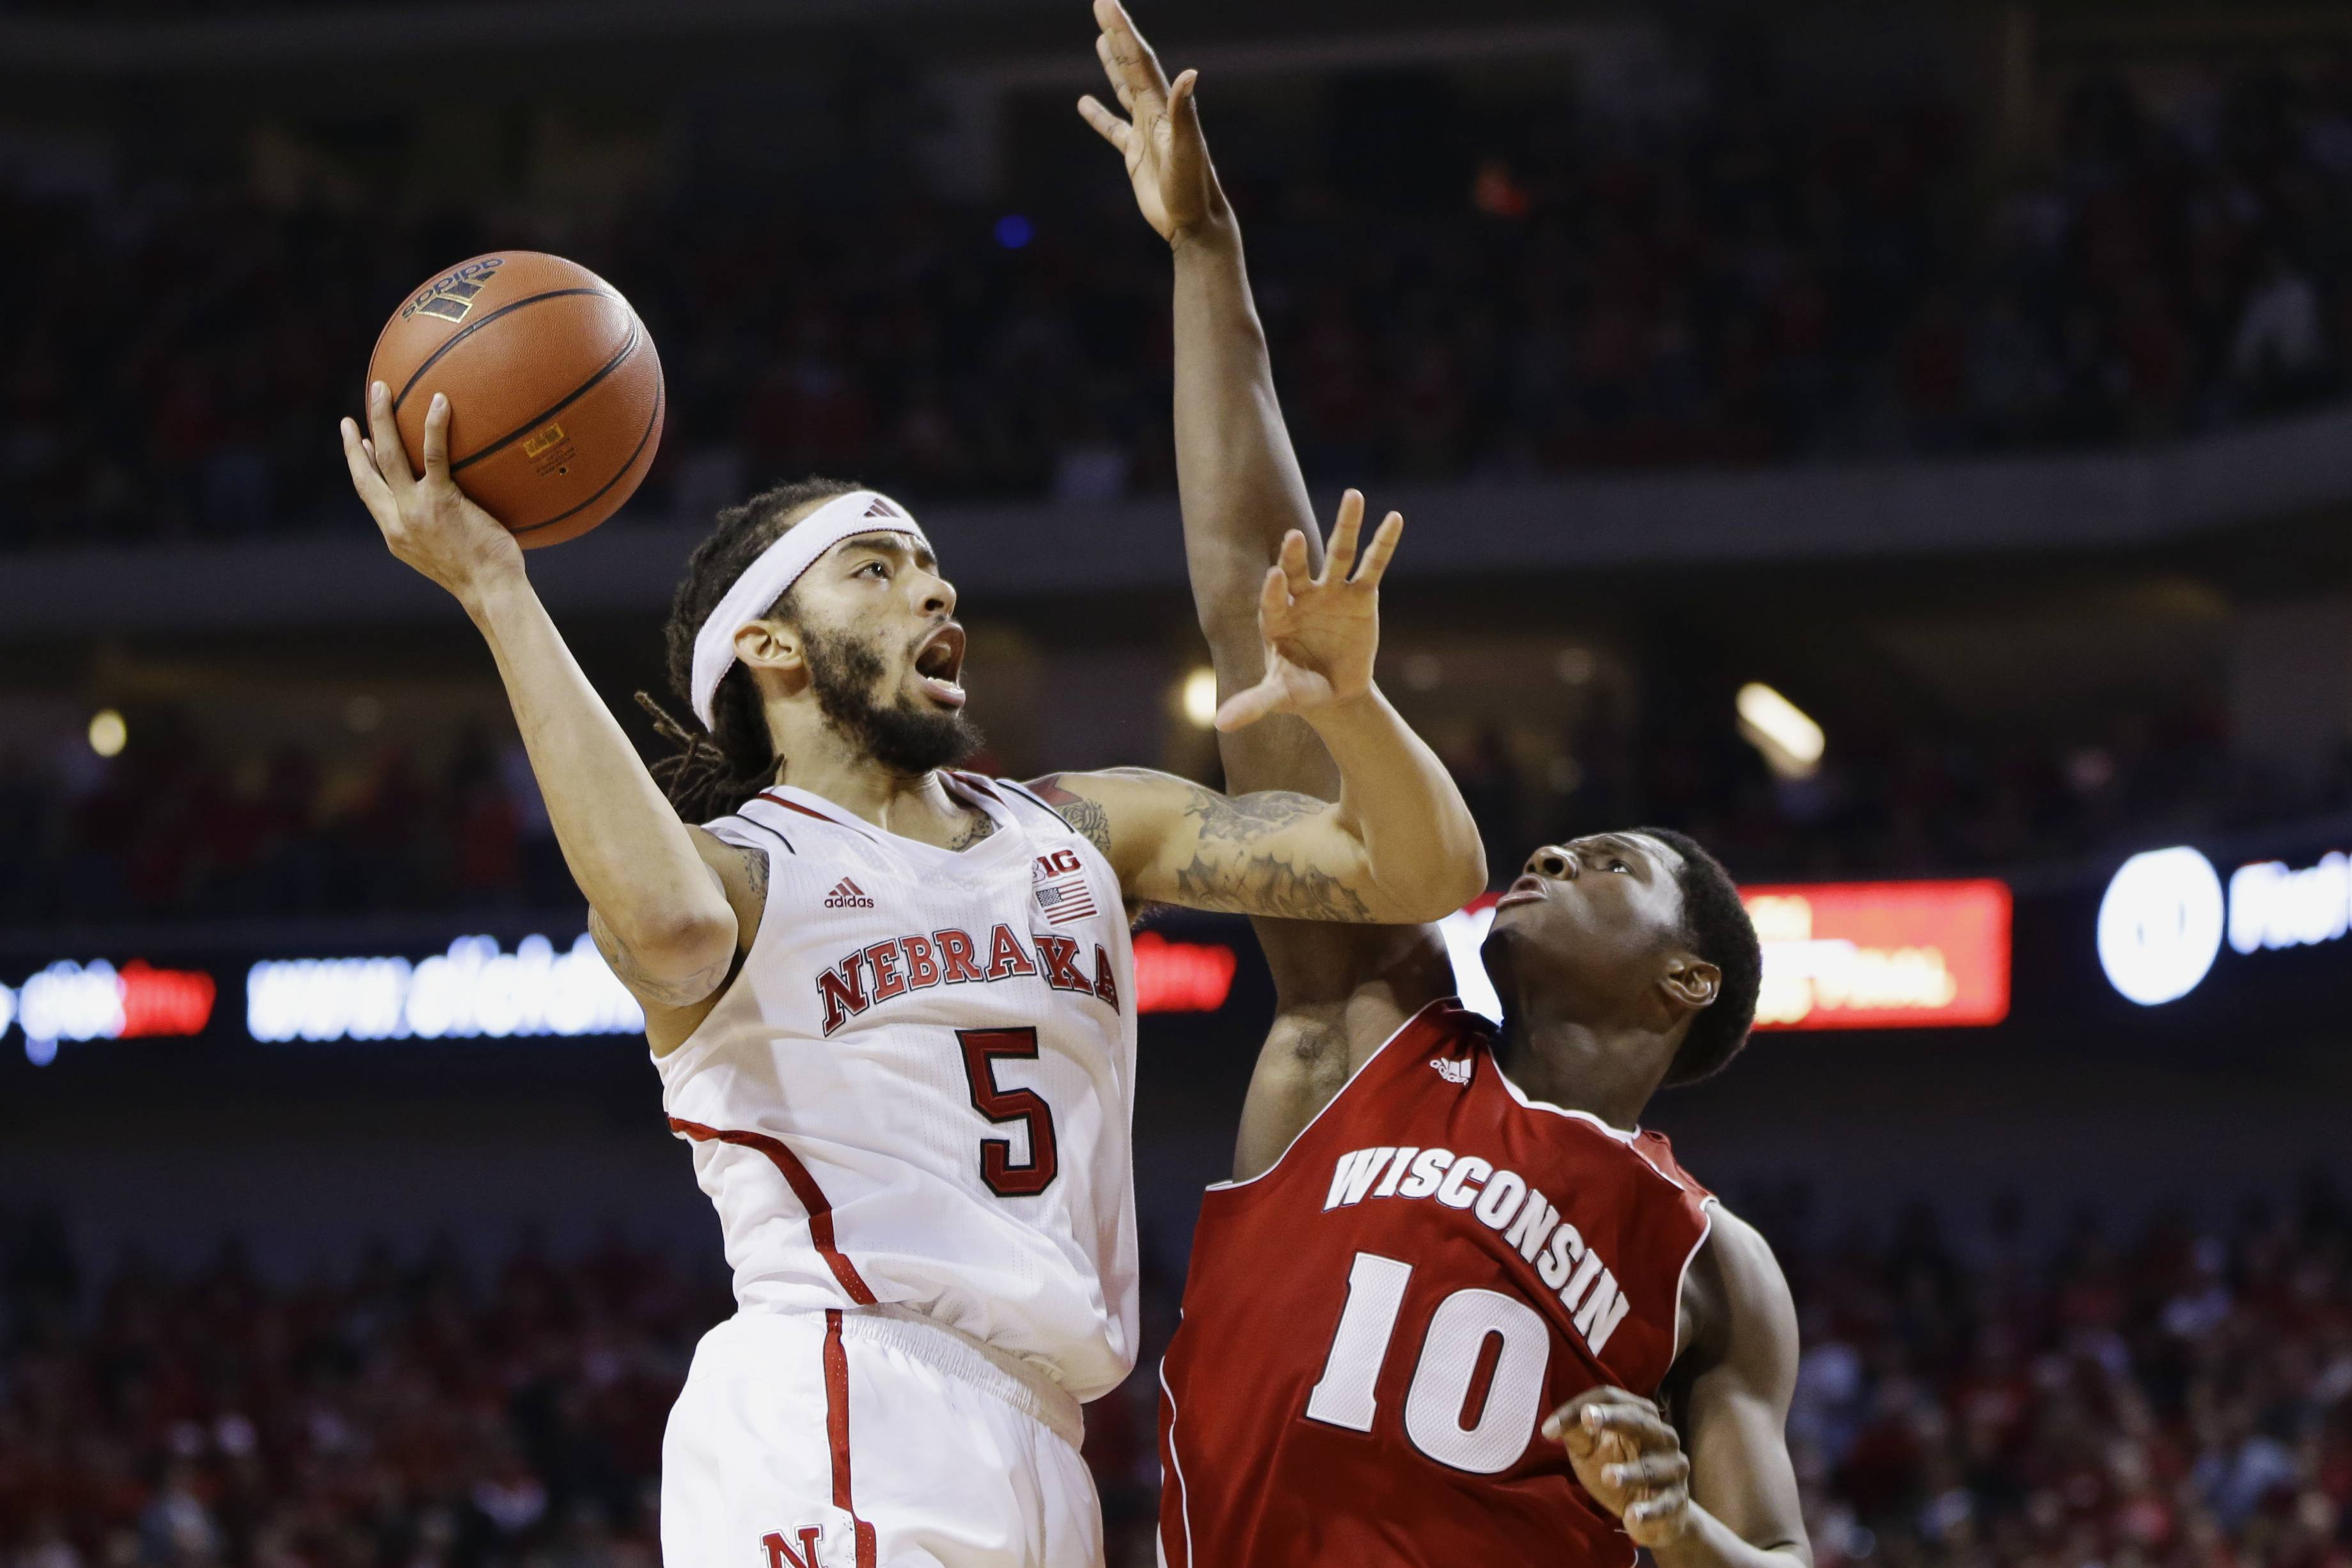 Nebraska's Terran Petteway (5) shoots over Wisconsin's Nigel Hayes (10) in the second half in Lincoln, Neb., Sunday.